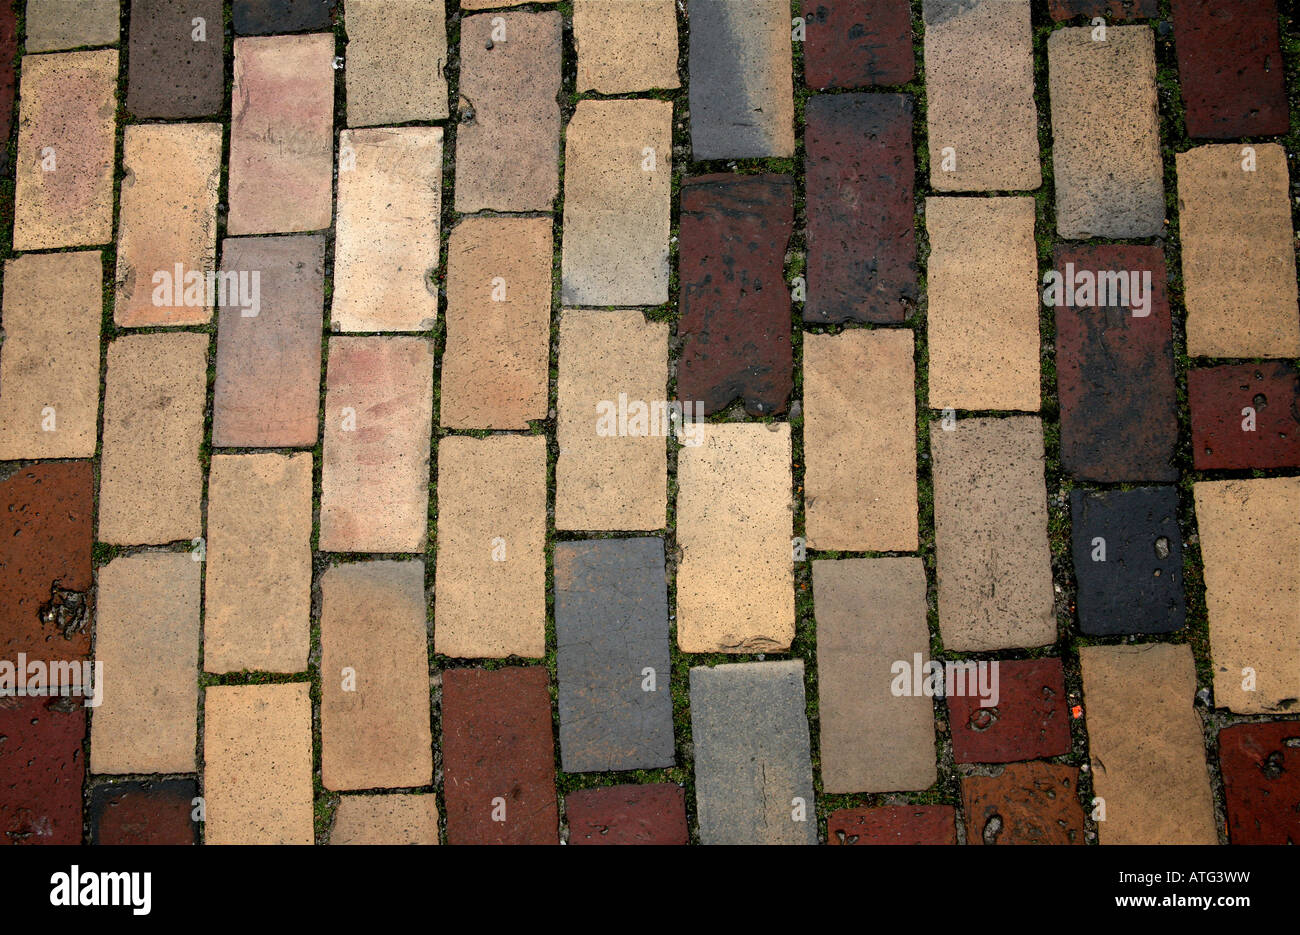 street paving stones colorful pattern abstract art - Stock Image